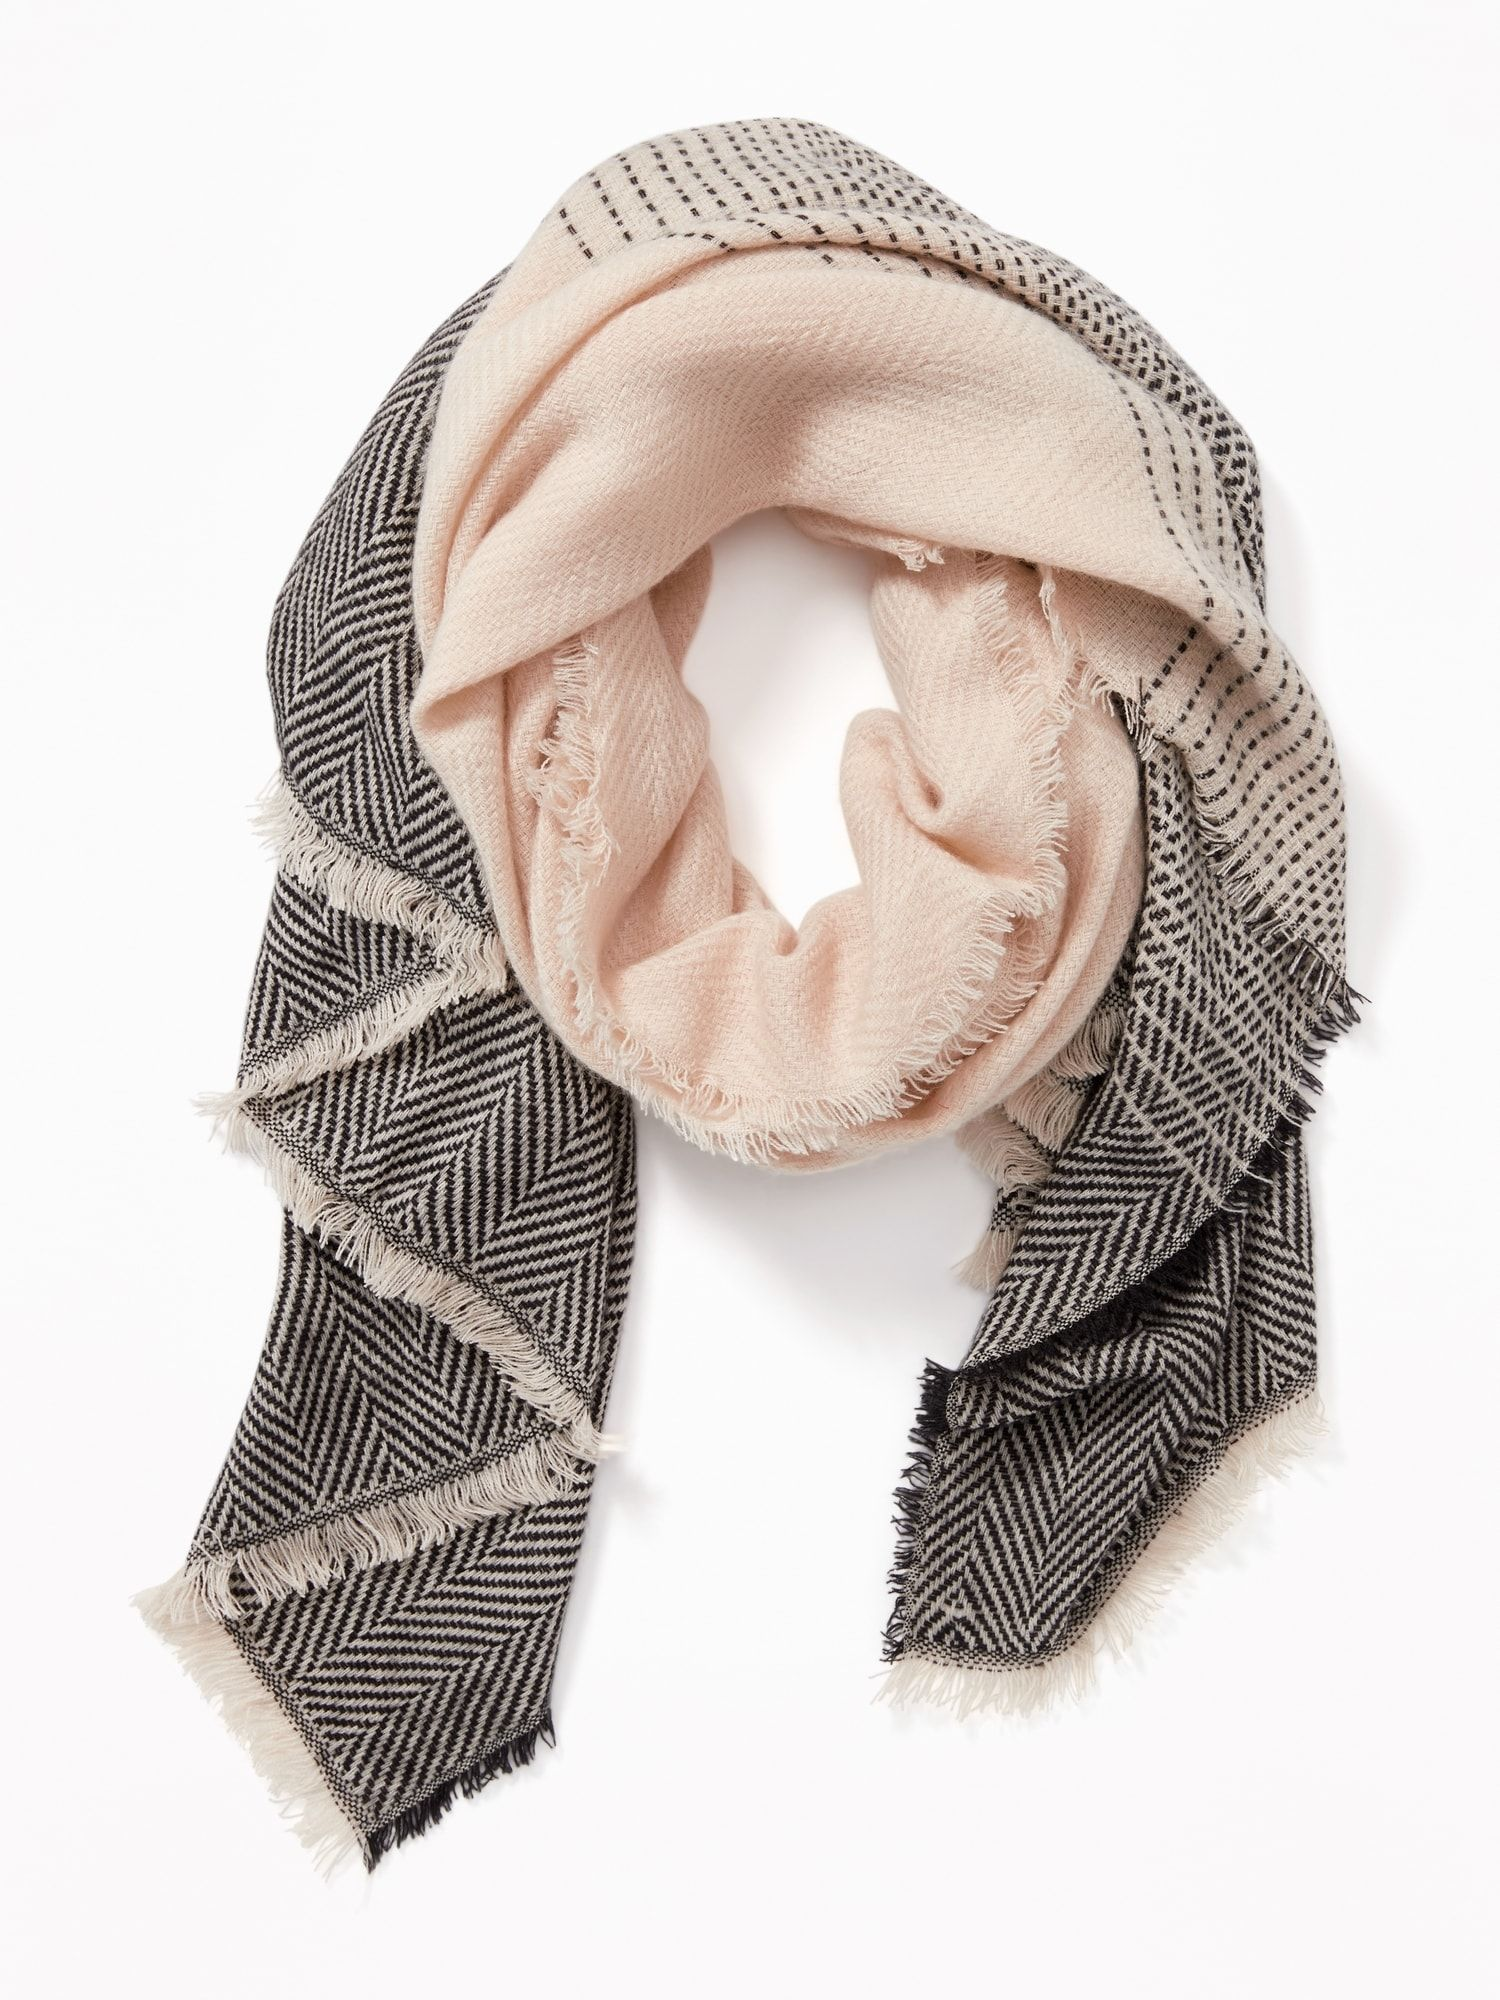 dc1a3bd3c Flannel Blanket Scarf for Women in 2019 | Style | Blanket Scarf ...